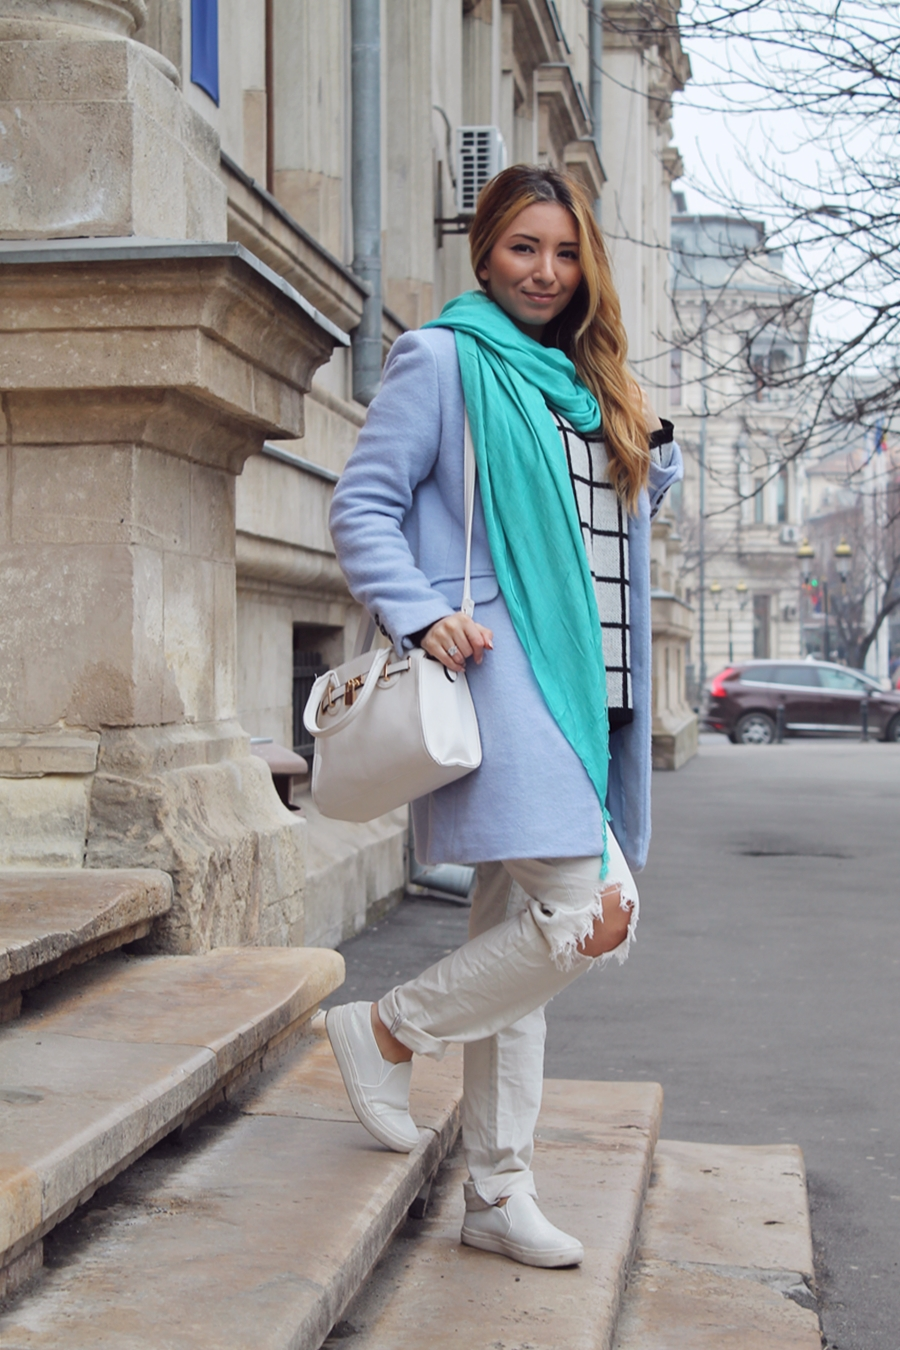 Street style, blue coat, mint green scarf, ripped jeans, checkered sweater, white bag, blogger Andreea Pantilinescu